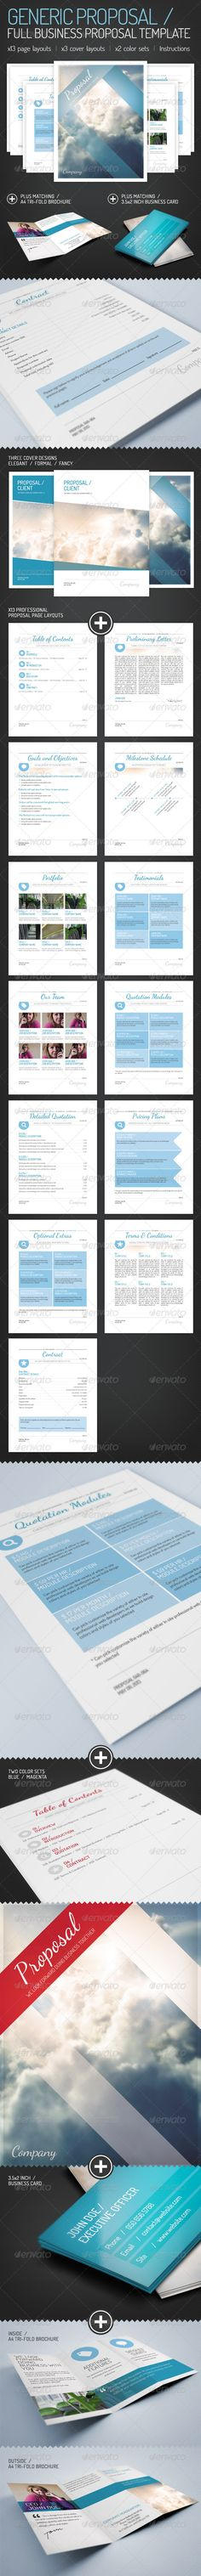 9 Best Business Proposal Template images Charts, Chart design